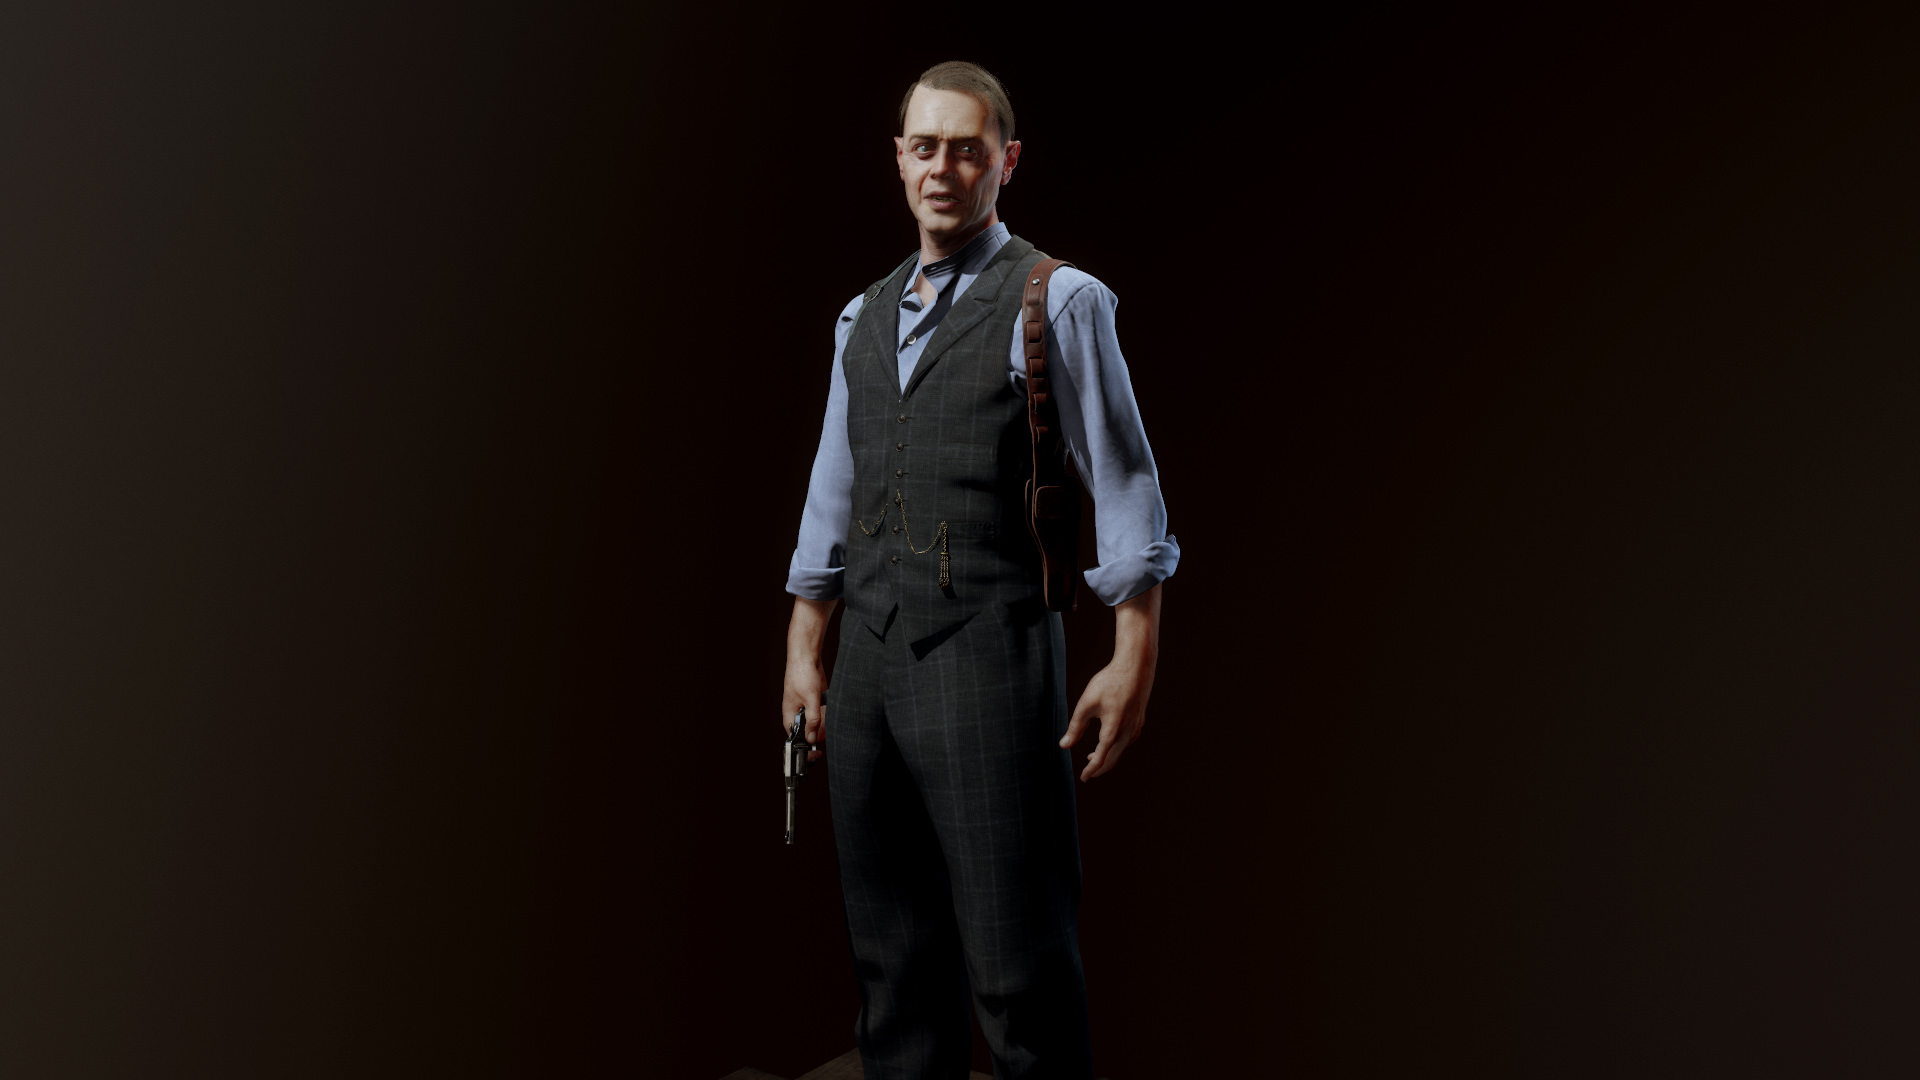 1920x1080 - Nucky Thompson Wallpapers 1